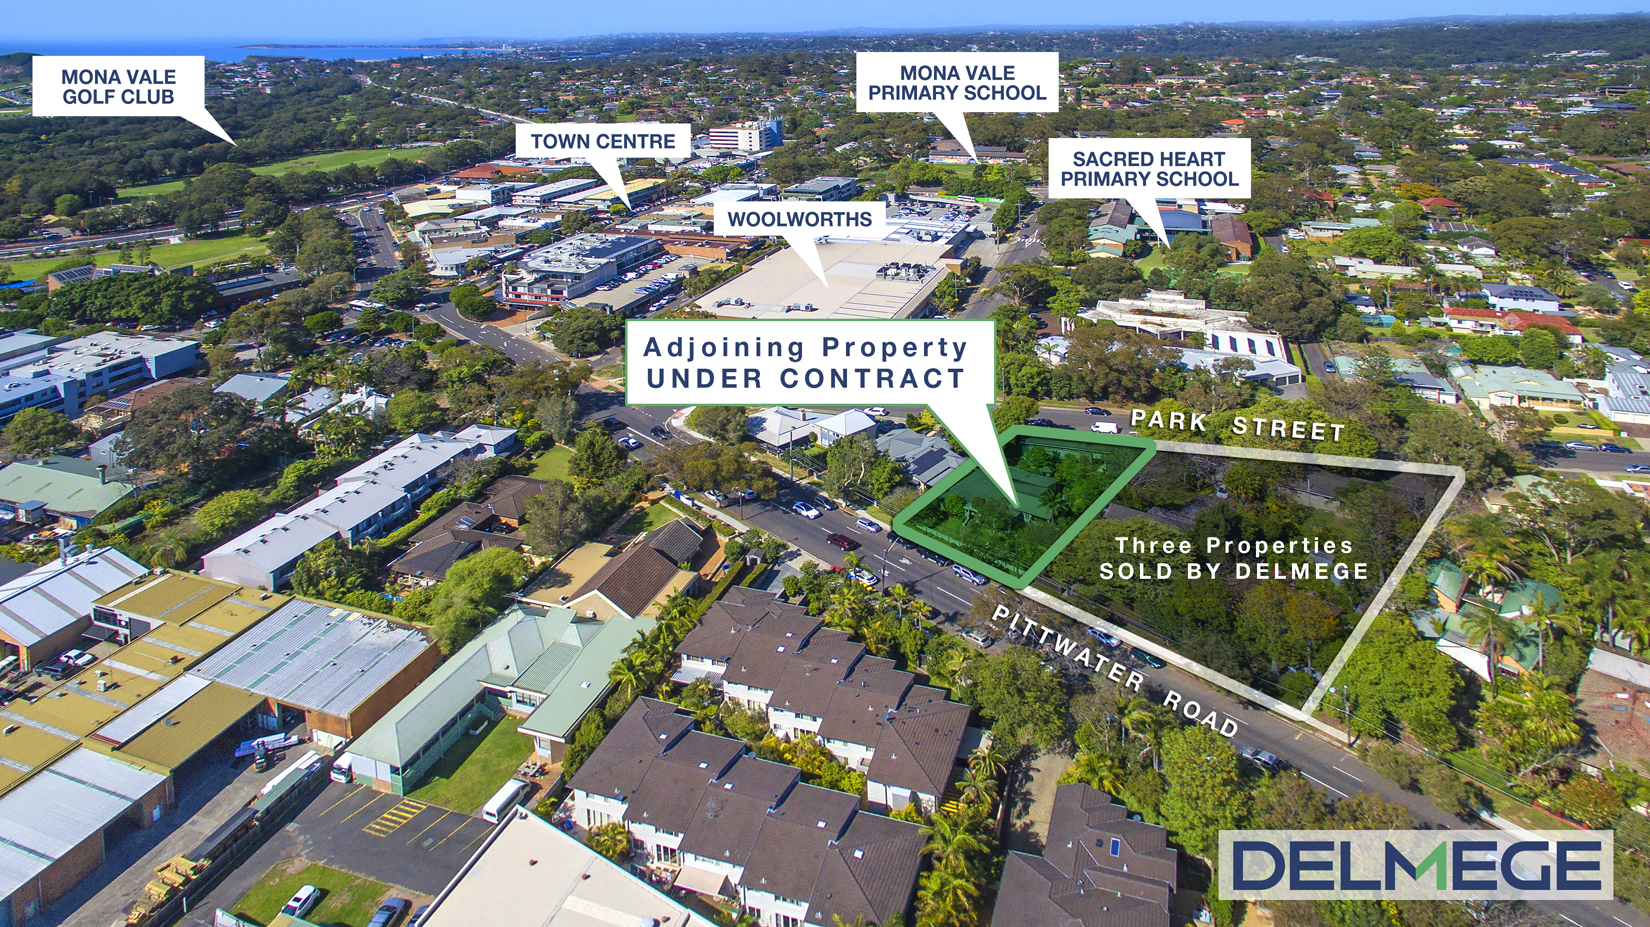 Industrial property SOLD in Mona Vale